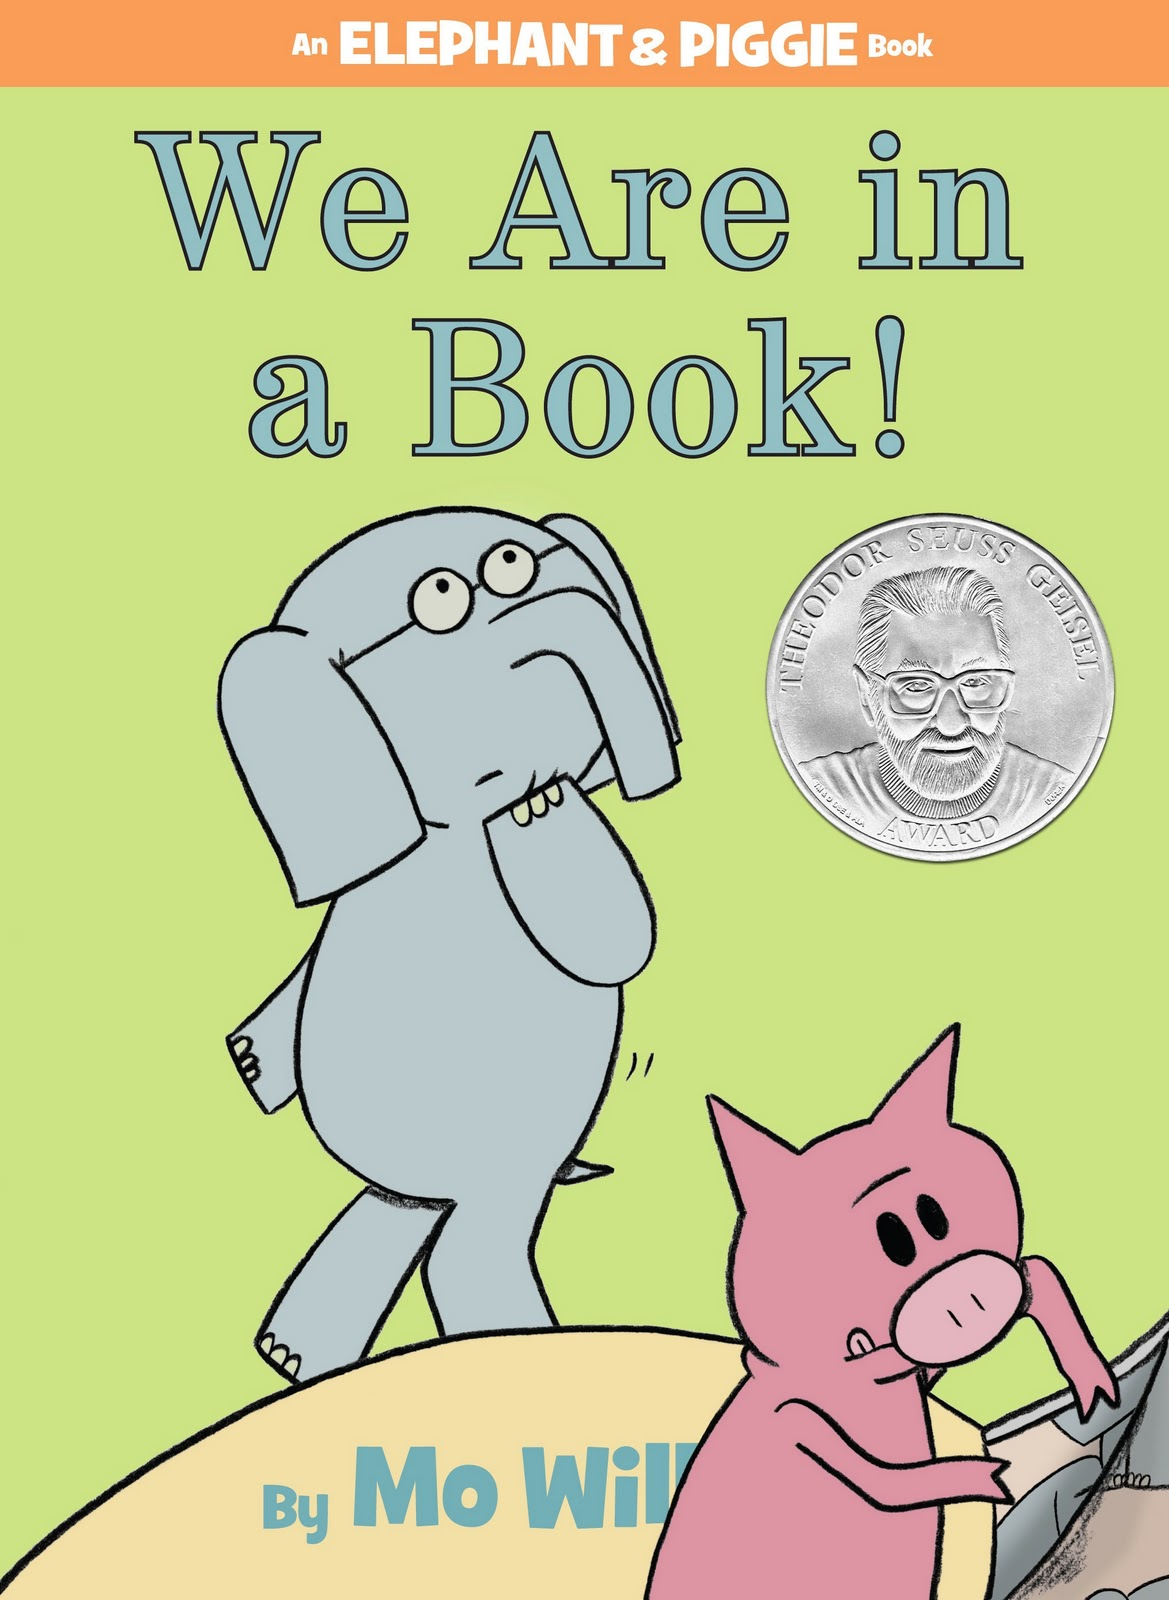 Elephant and Piggie (series), by Mo Willems.                                                                                                                            Two best friends learn all kind of lessons in this series of low-stakes moral dilemmas.                                                                                                                            Buy now: Elephant and Piggie (series)